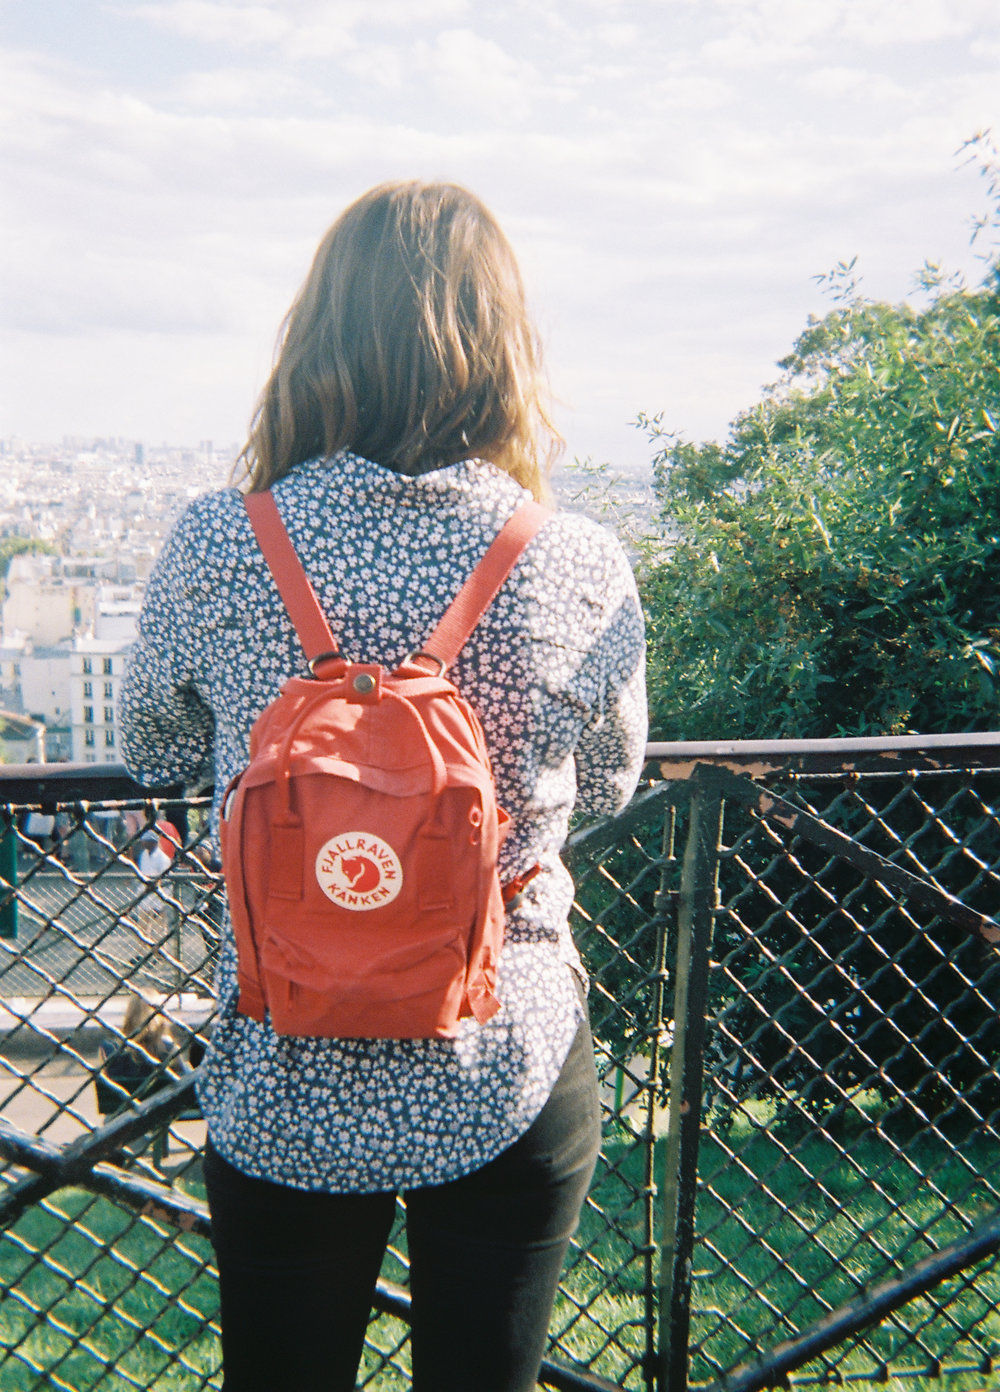 2nd September - Sacré-Cœur, Paris